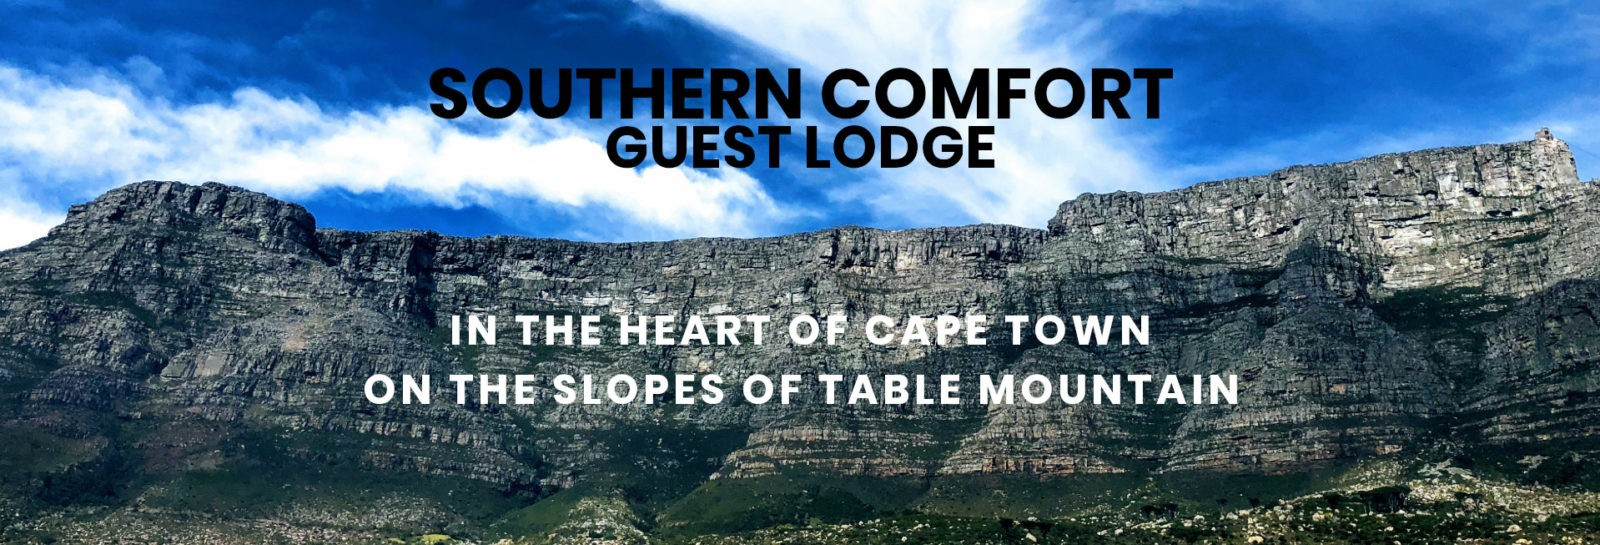 Southern Comfort Guest Lodge. Cape Town, South Africa.